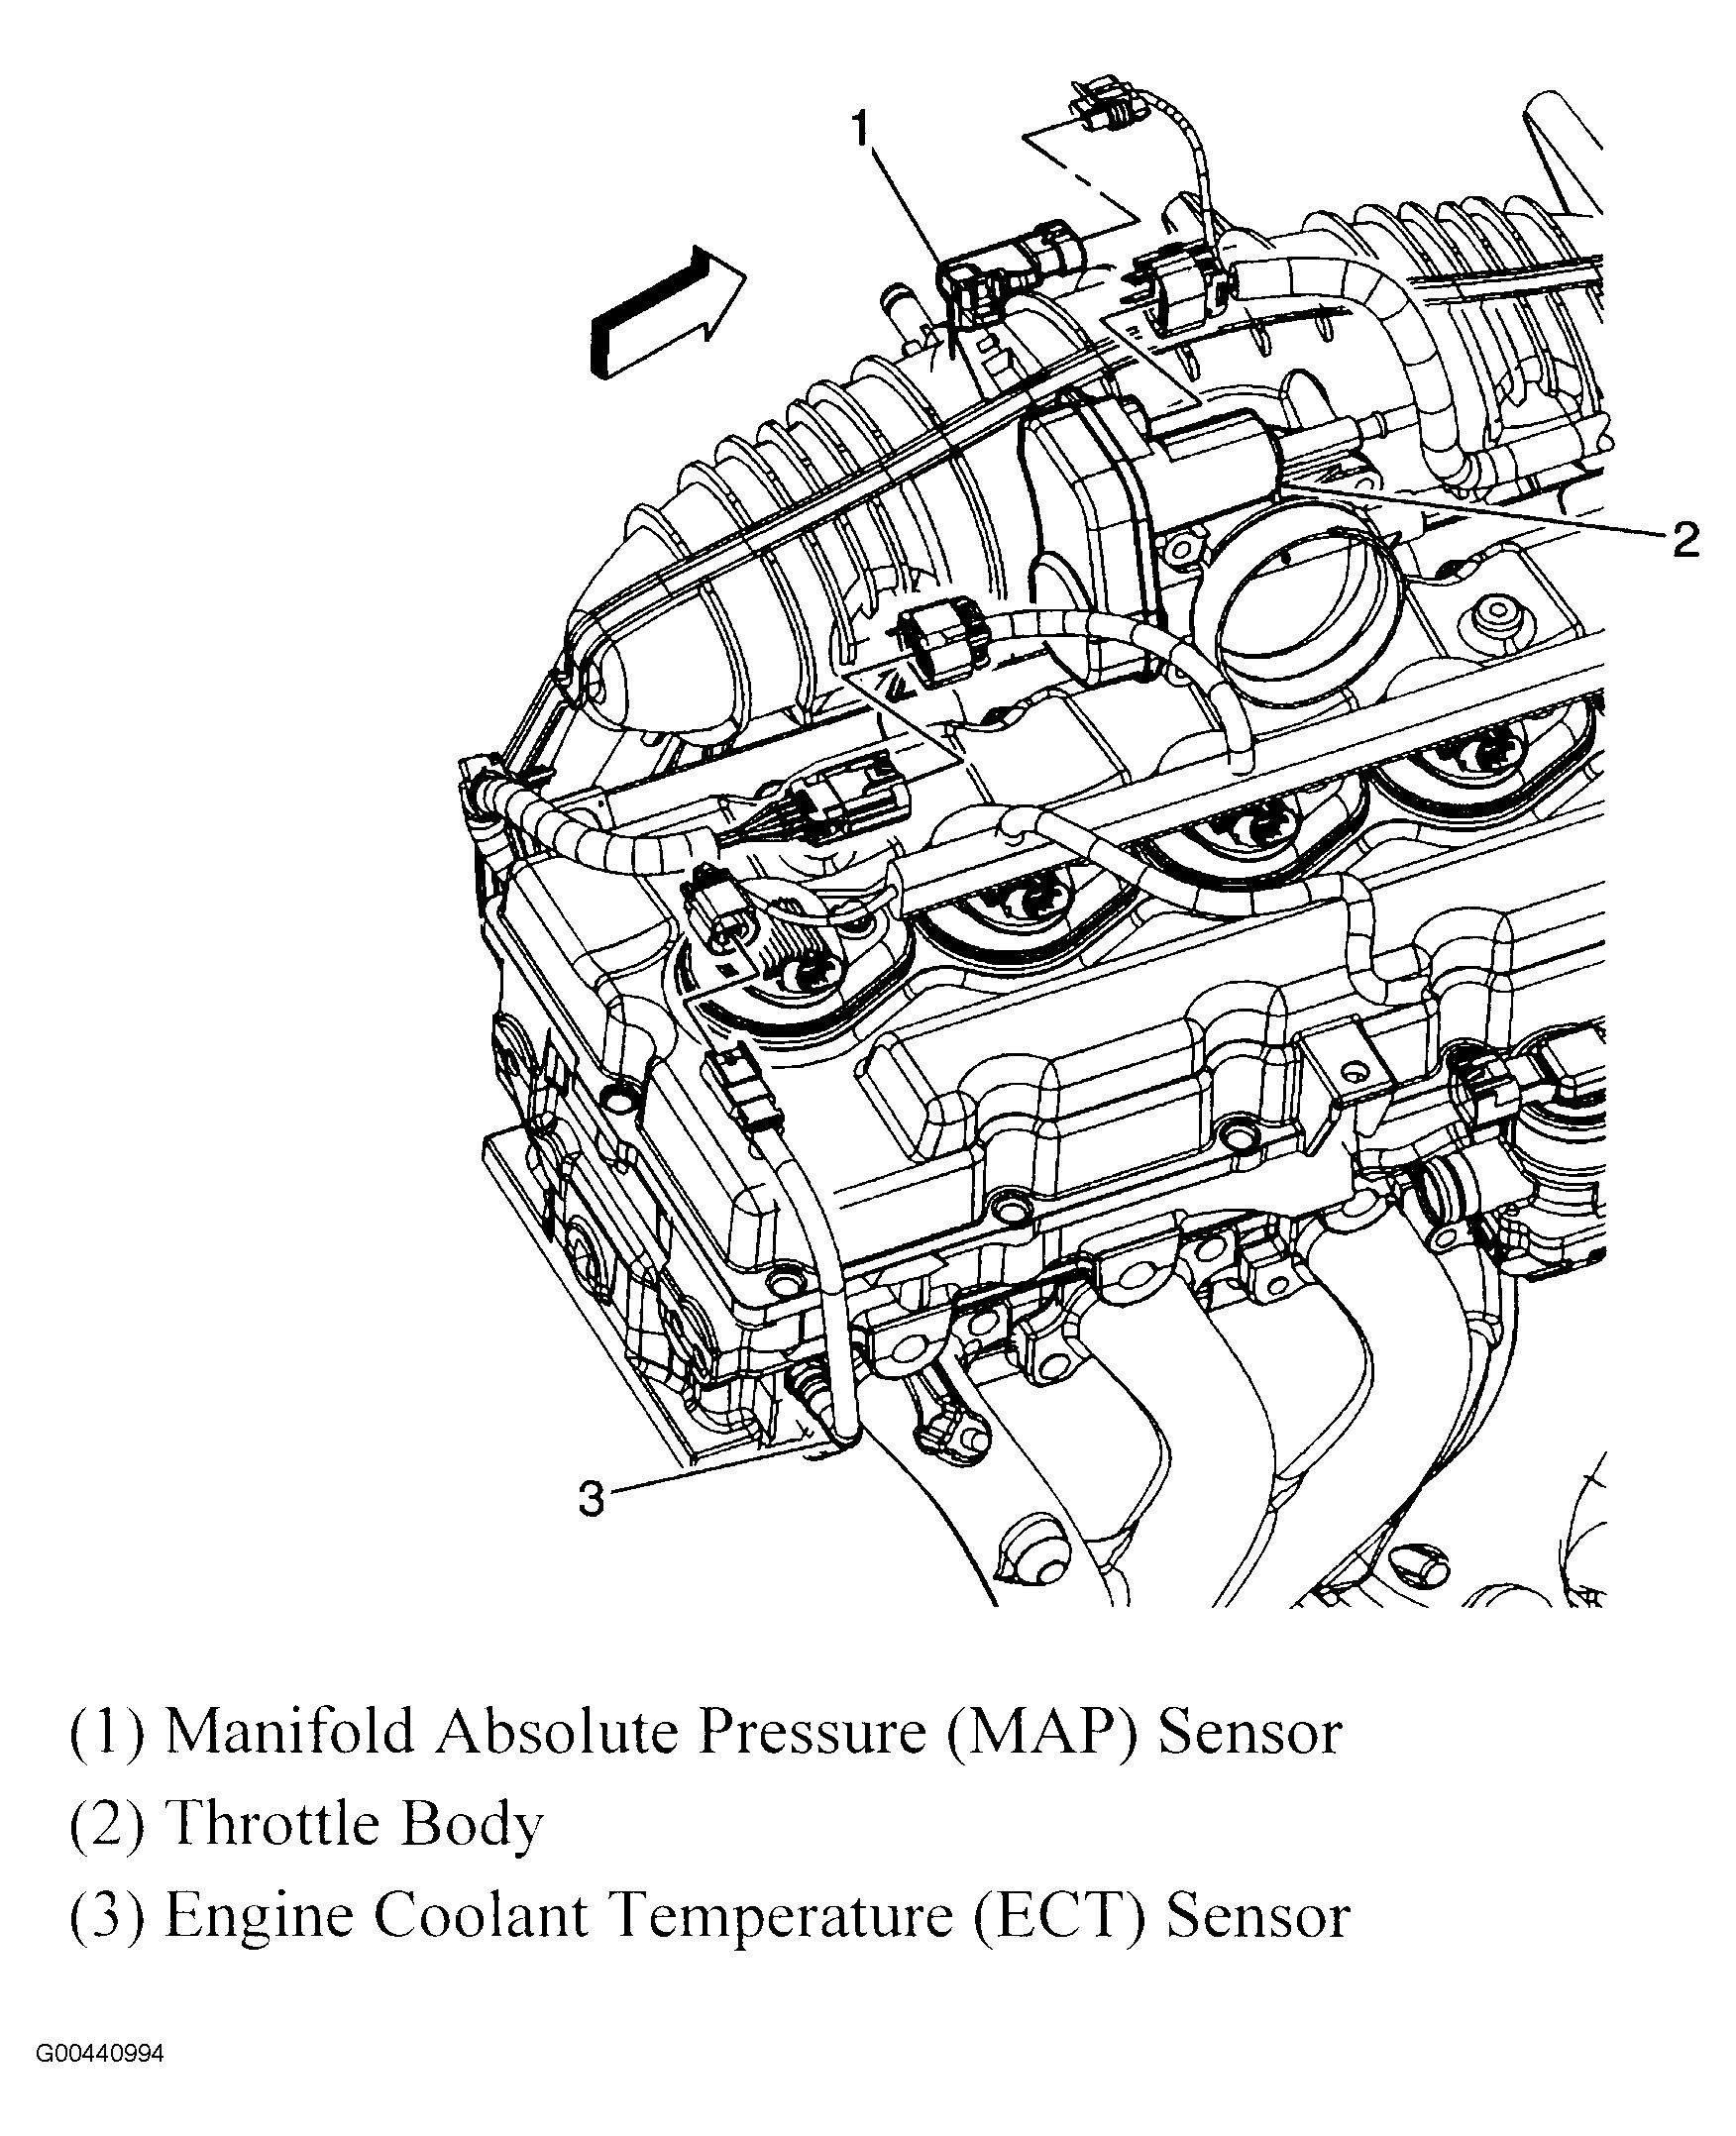 1996 Audi A4 Coolant Diagram Html: 98 Ford Ranger Cooling Fan Wiring Diagram At Nayabfun.com